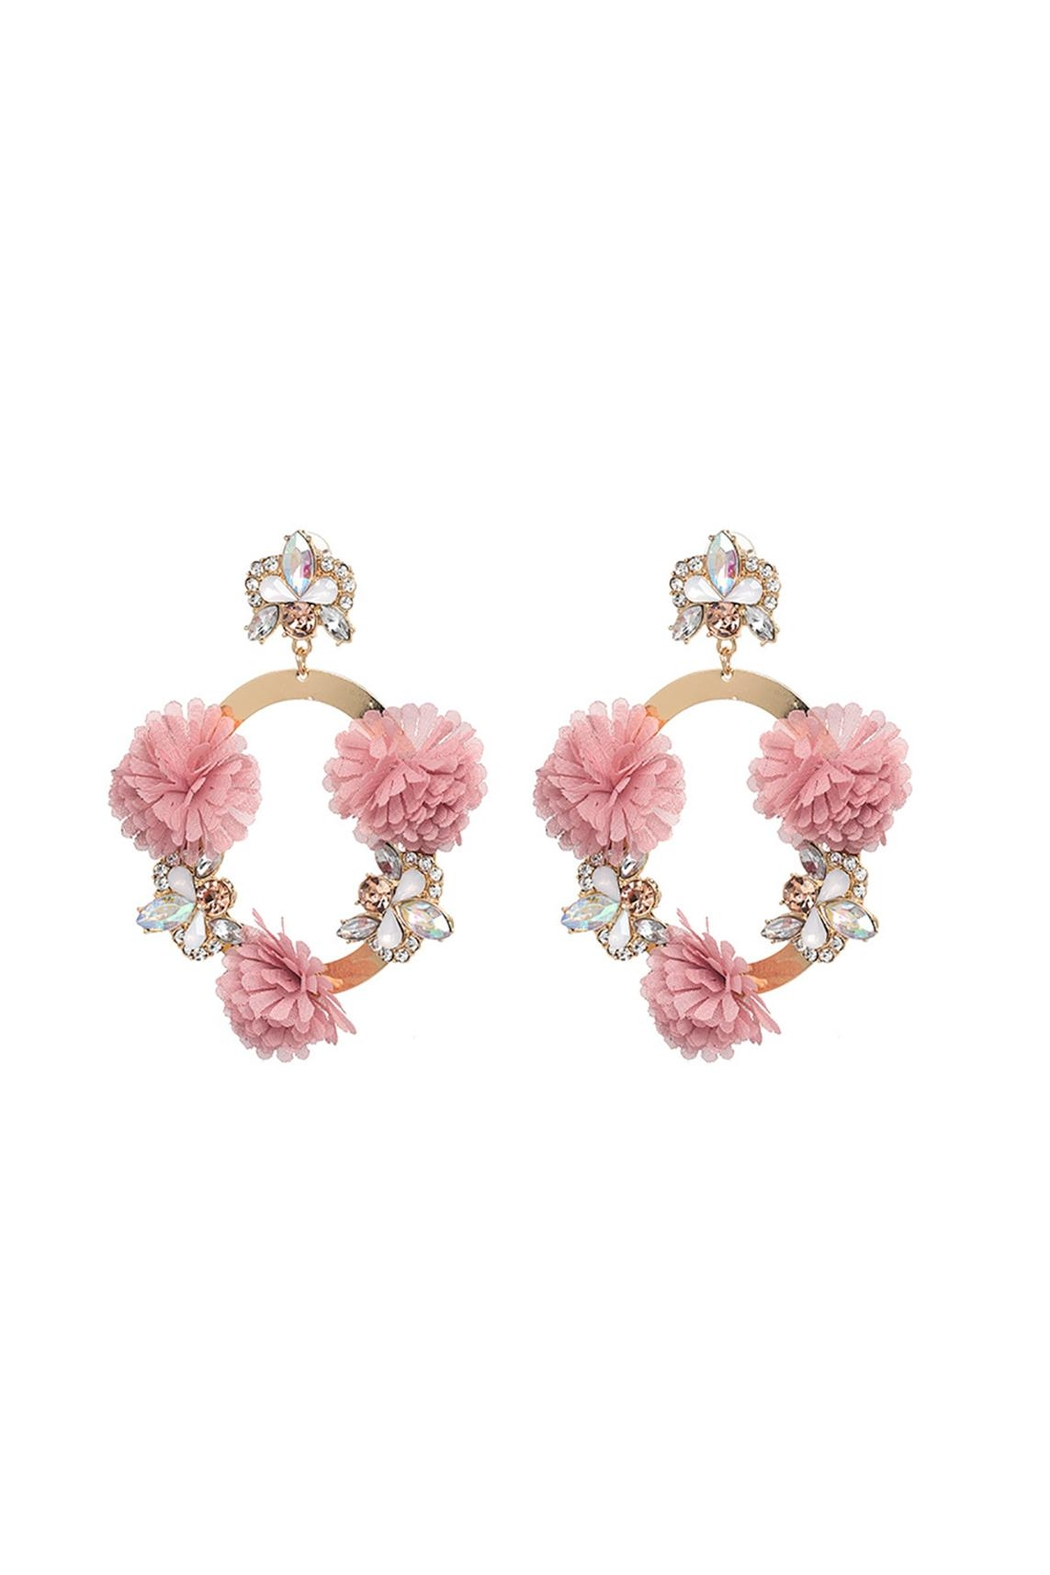 Fashion Pickle Pink Flower Earrings From Manhattan Shoptiques